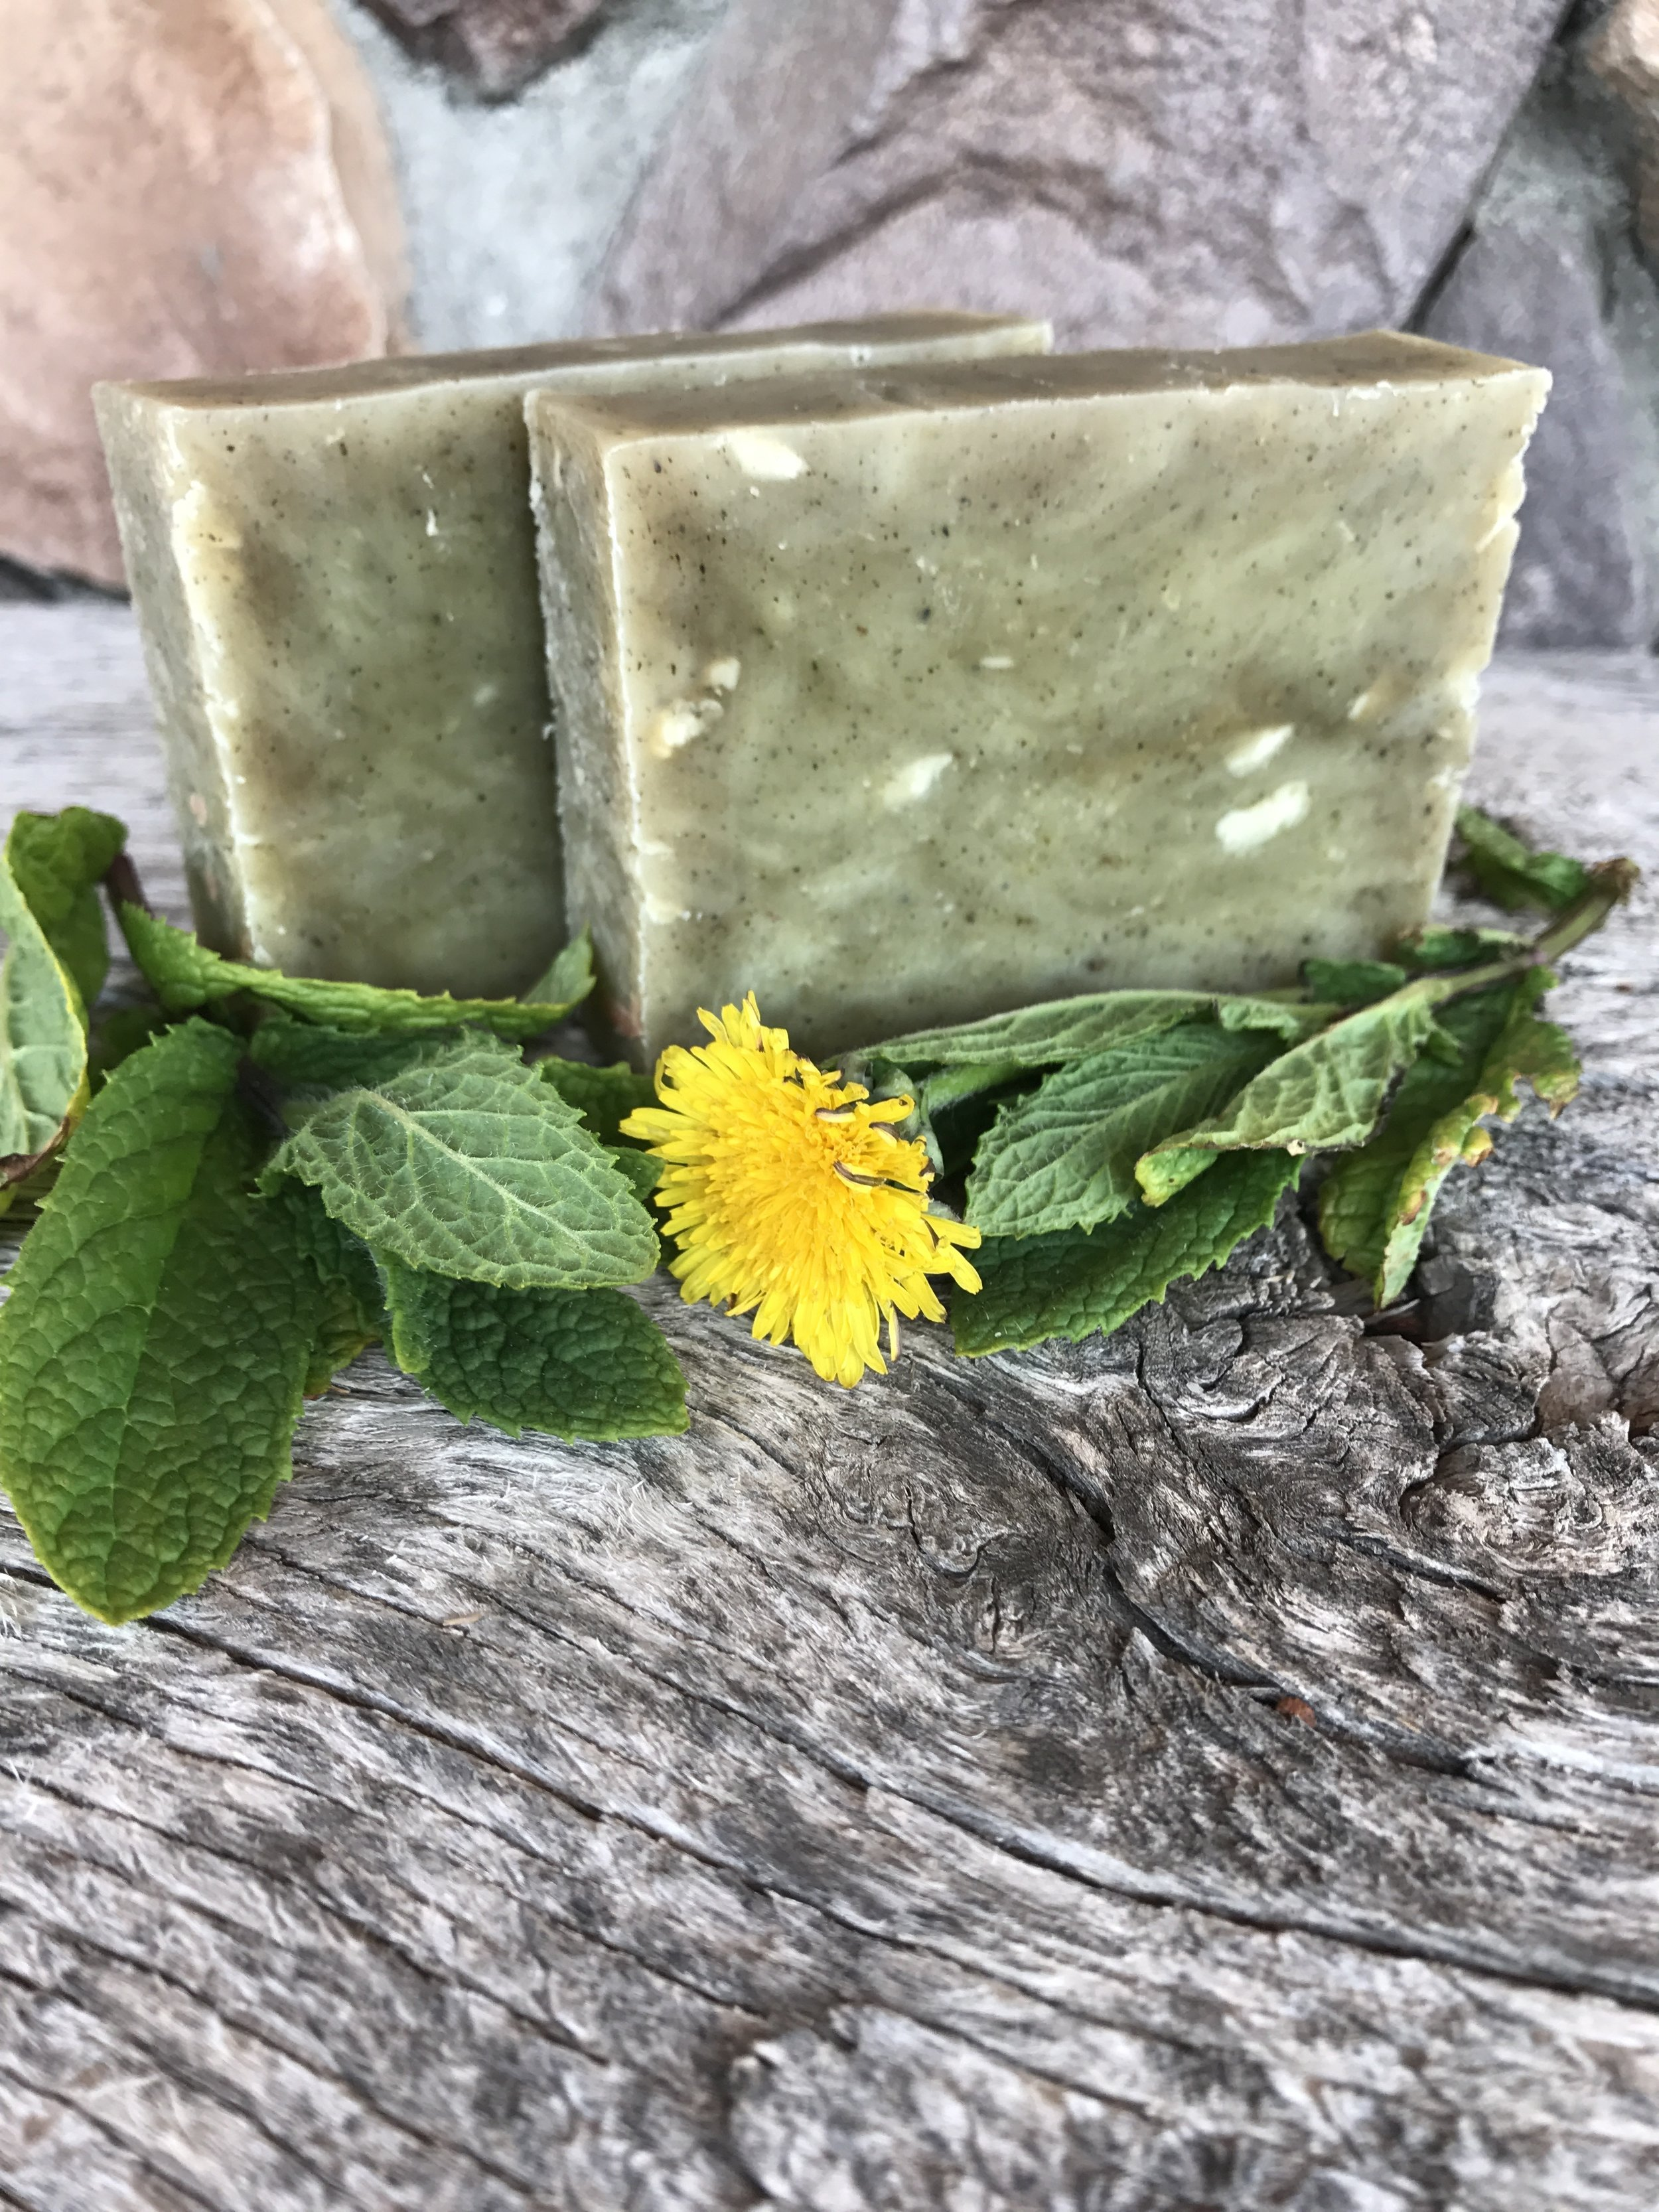 This soap is colored with Nettle powder and is scented with Frankincense, Spearmint, and a touch of Patchouli.